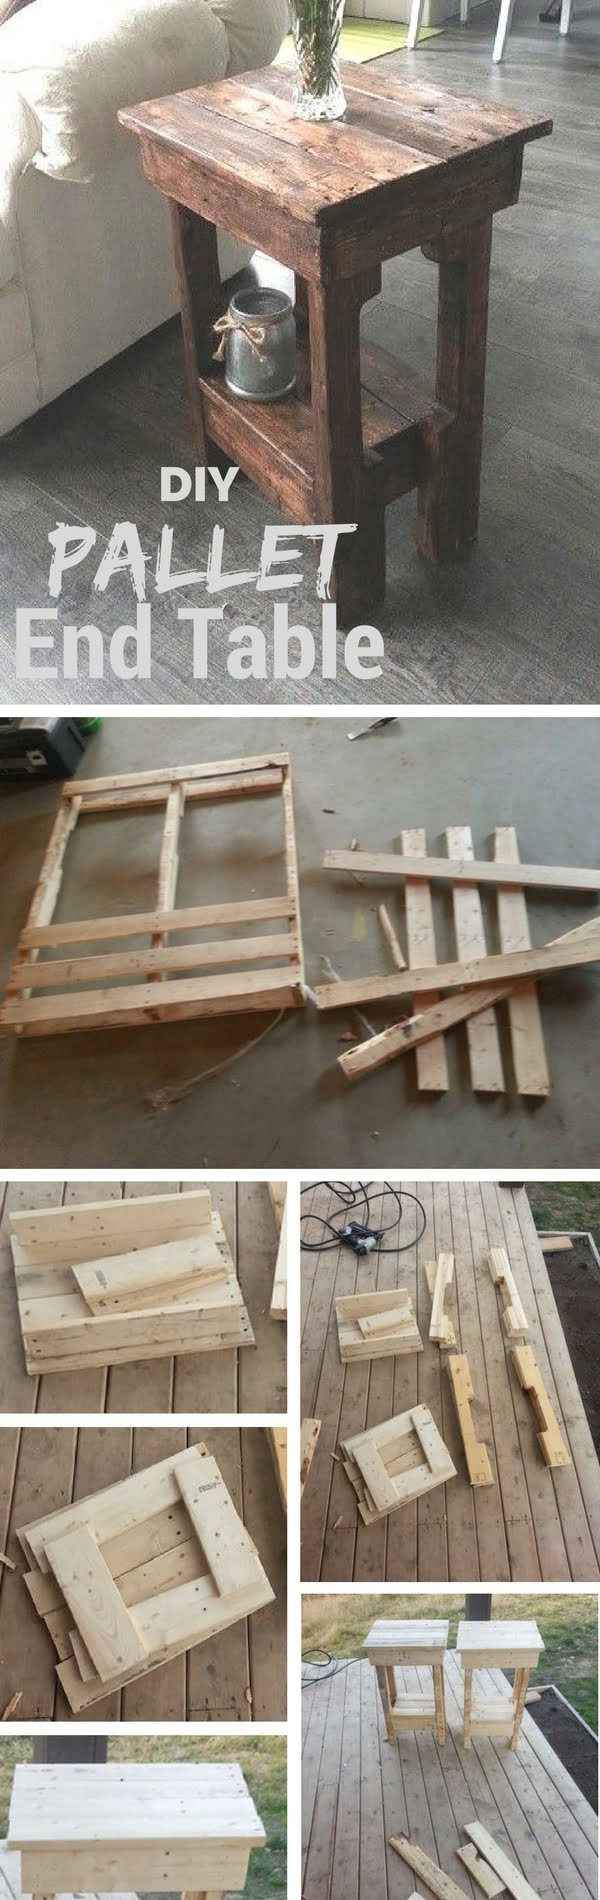 DIY end table from pallet wood